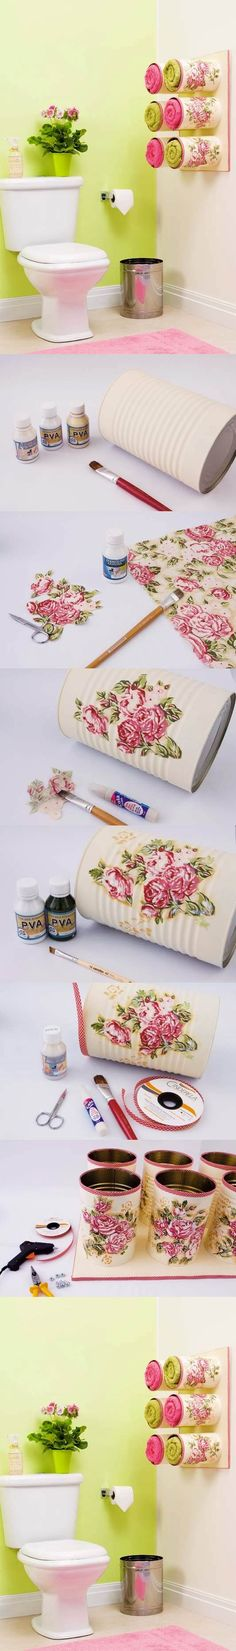 DIY Beautiful Towel Box 2